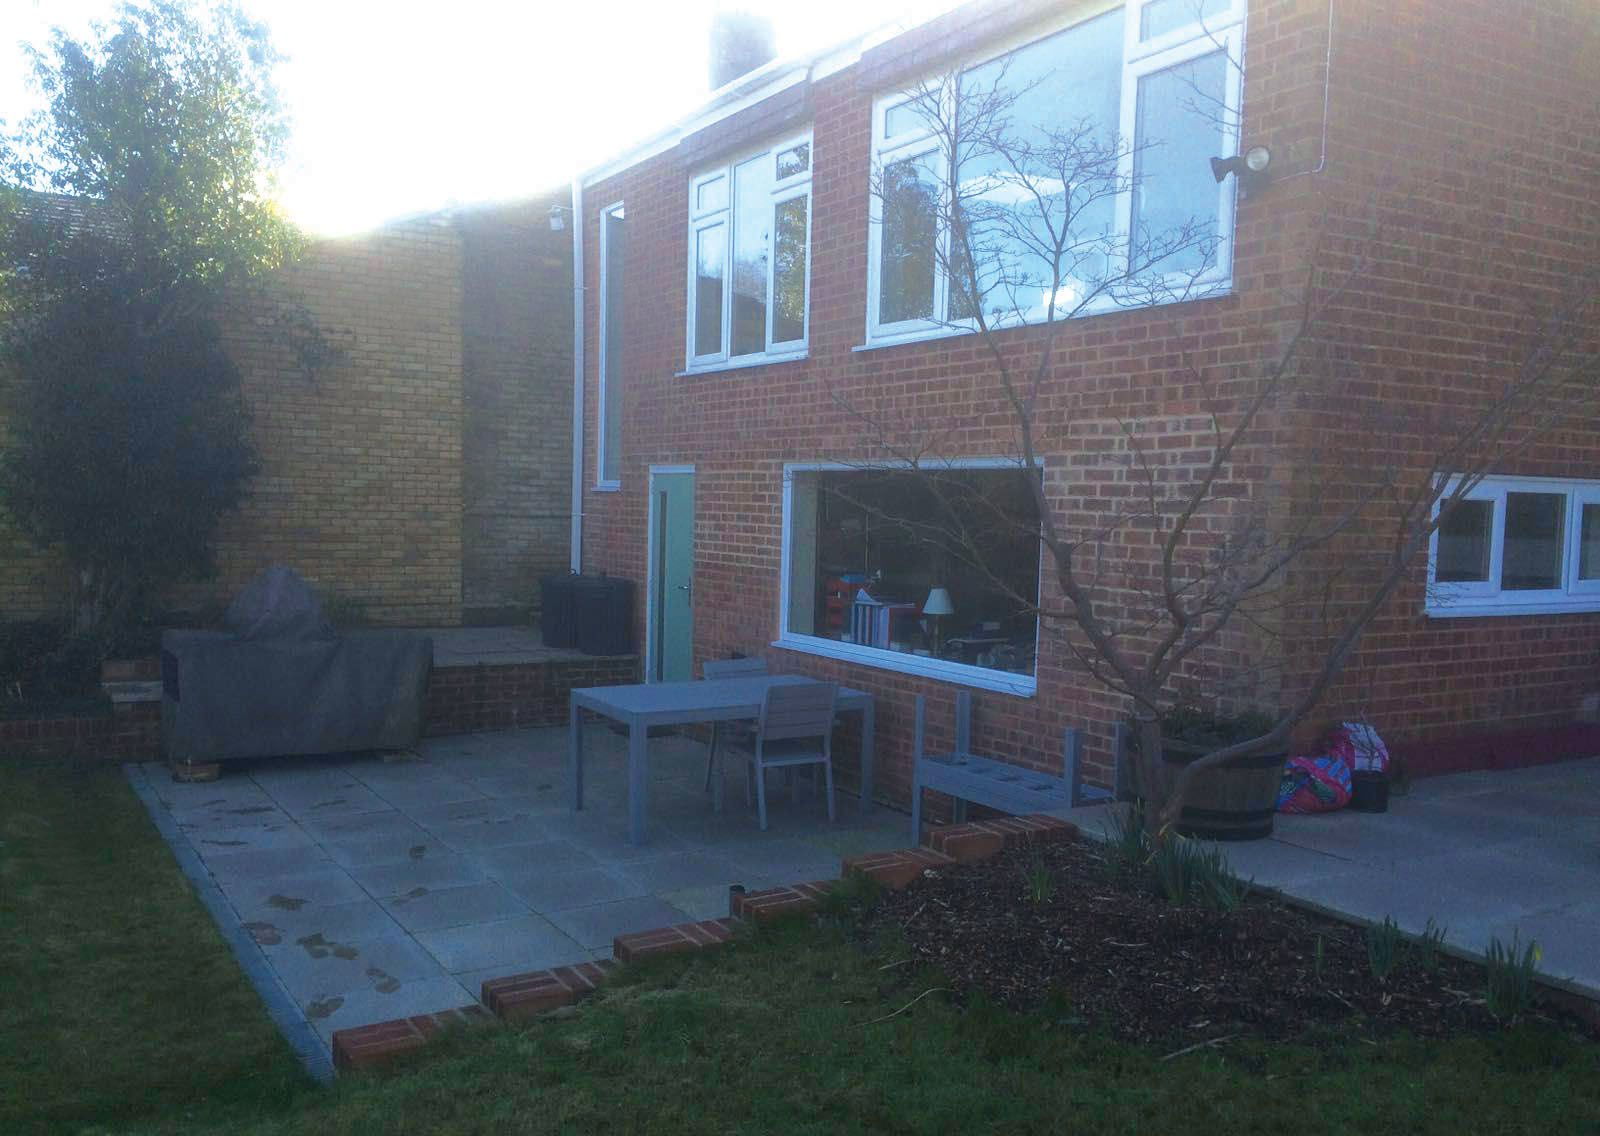 Structural reconfiguration and patio